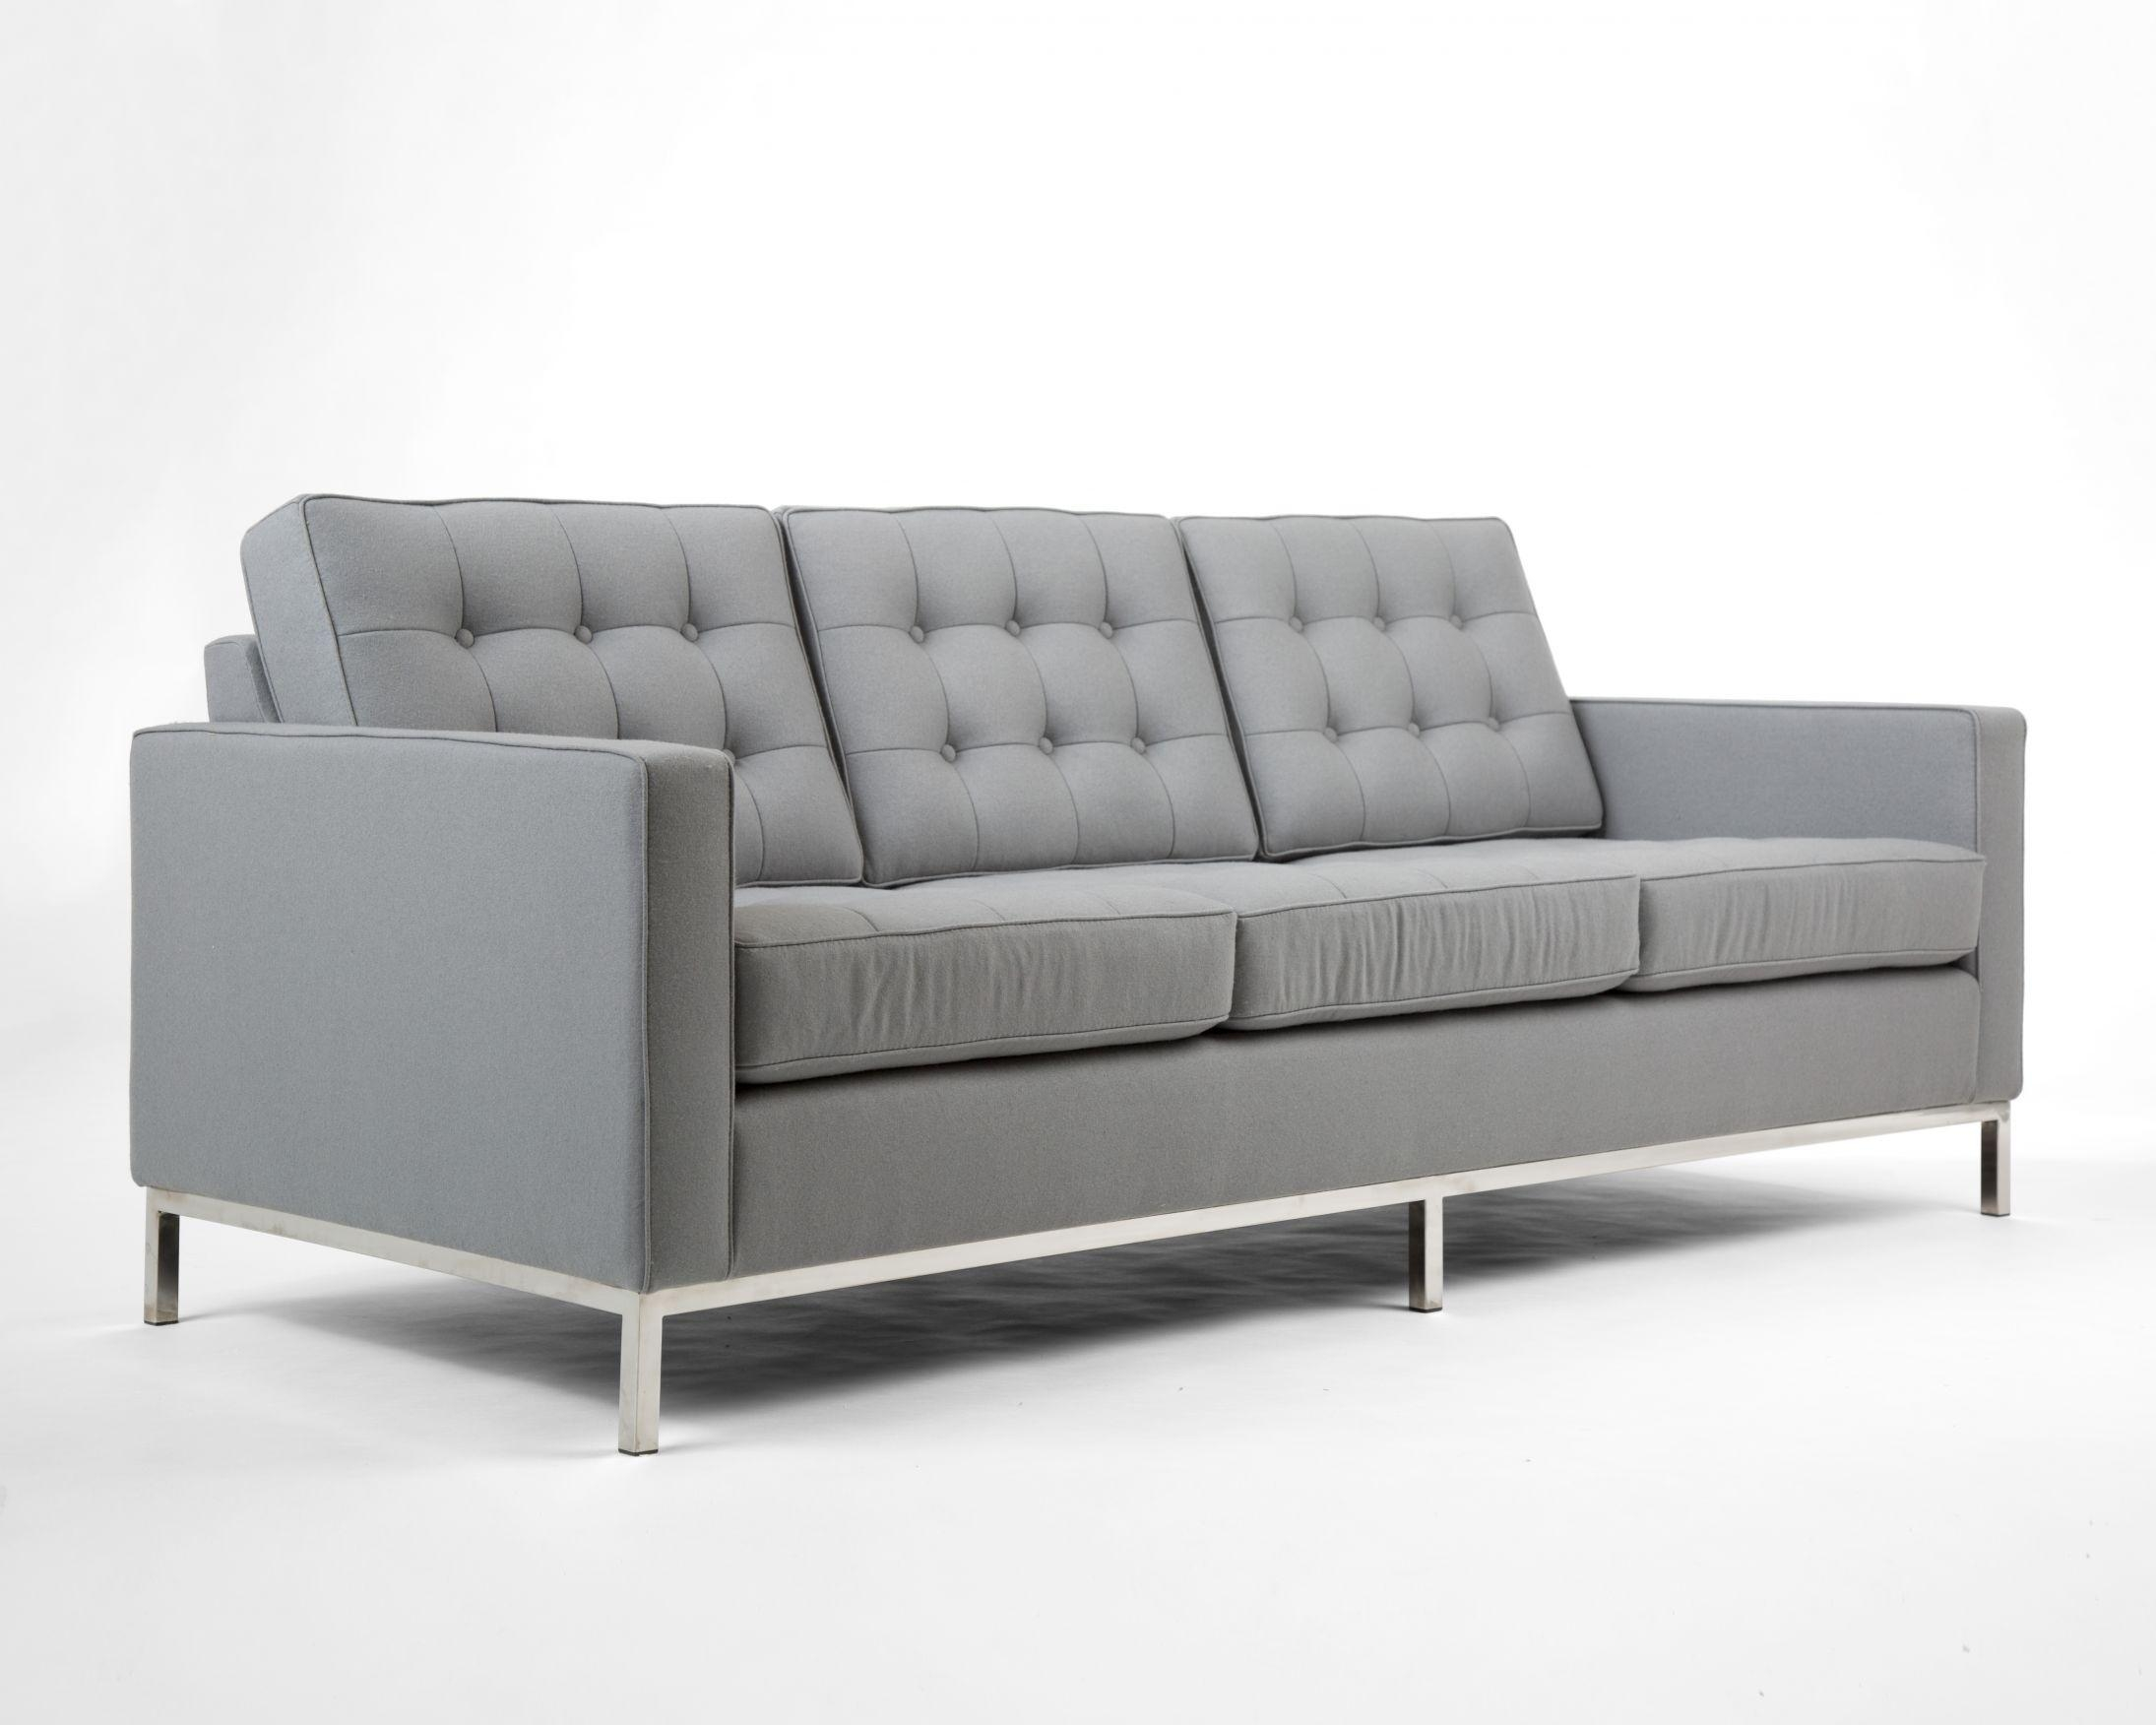 Florence Sofa | Reproduction | Mid Century Modern With Regard To Florence Sofas (View 3 of 20)